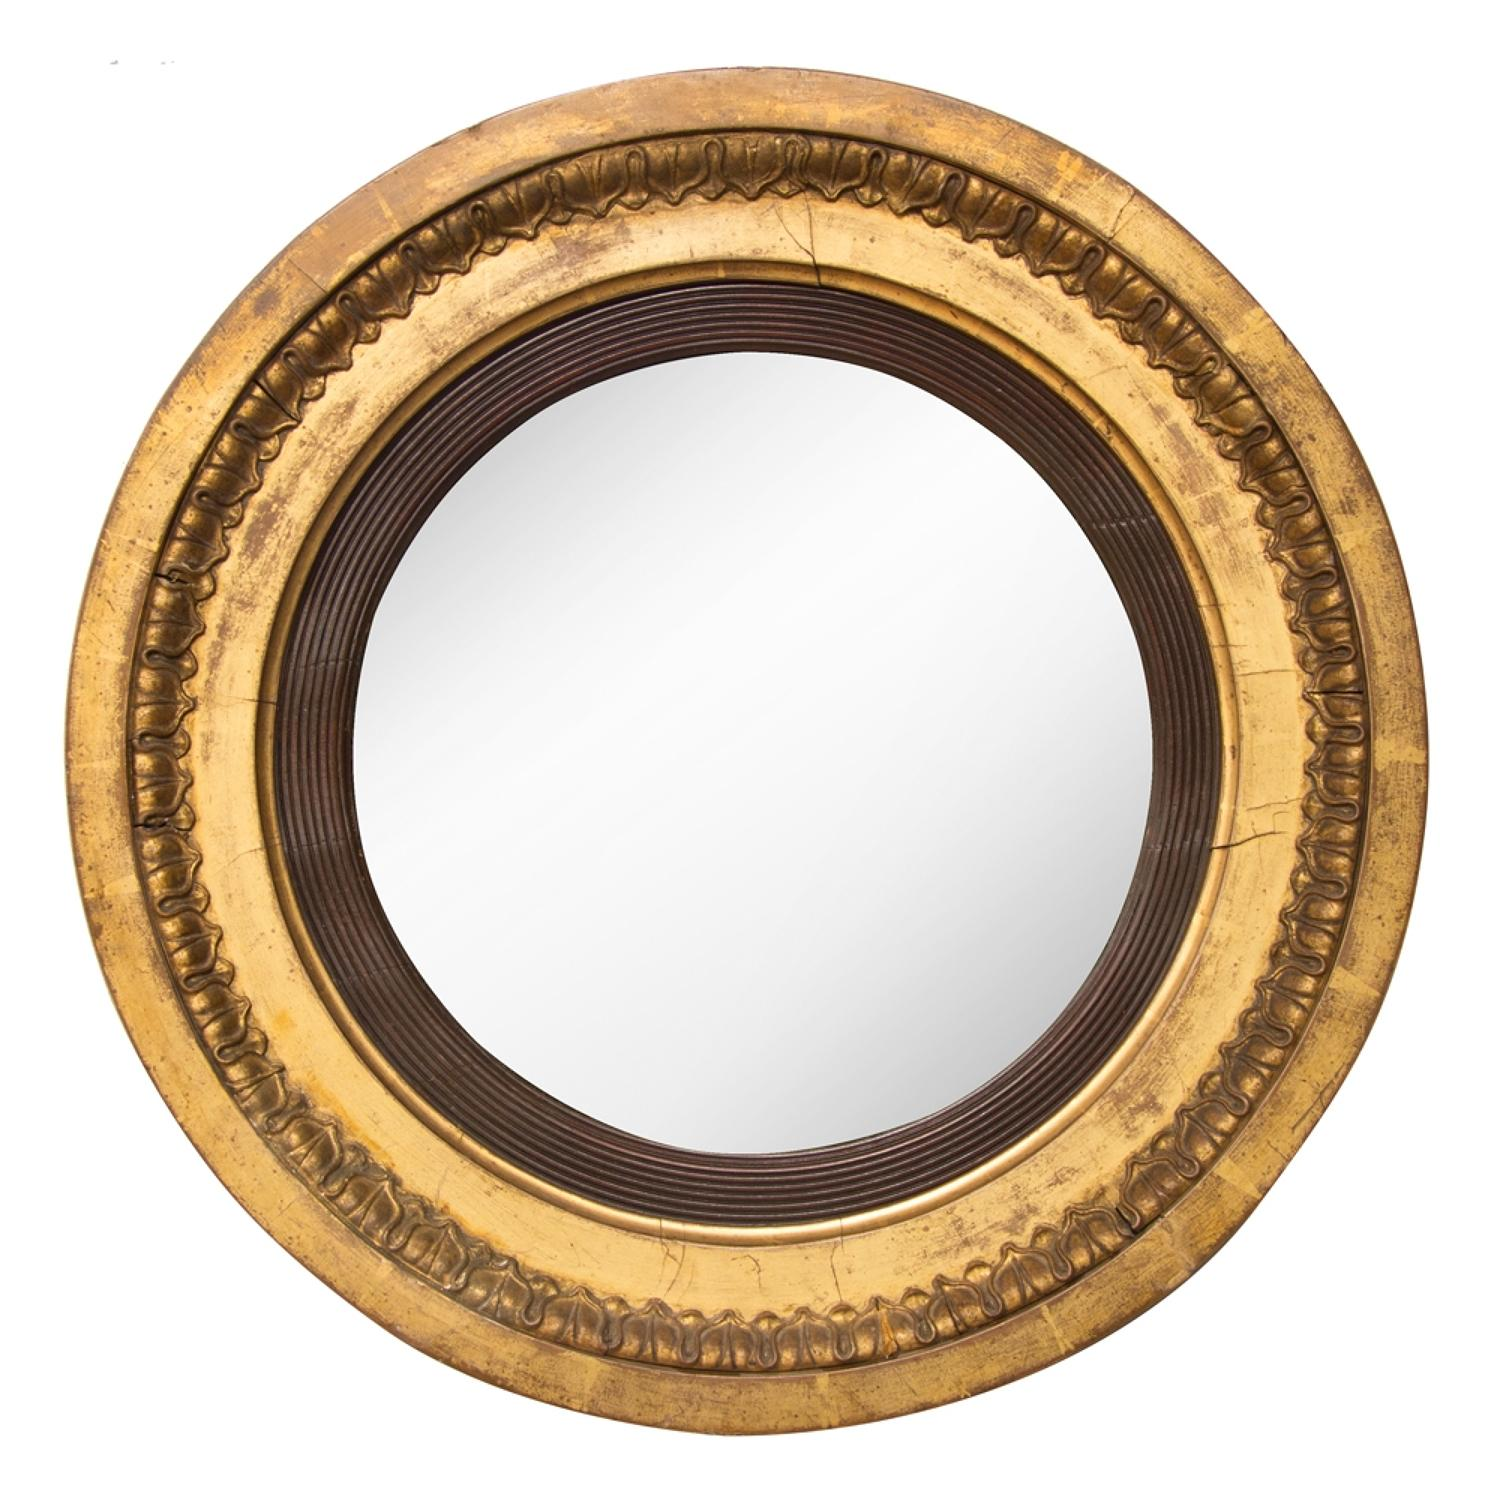 Early Convex Mirror with Original Mercury Plate Glass c.1800